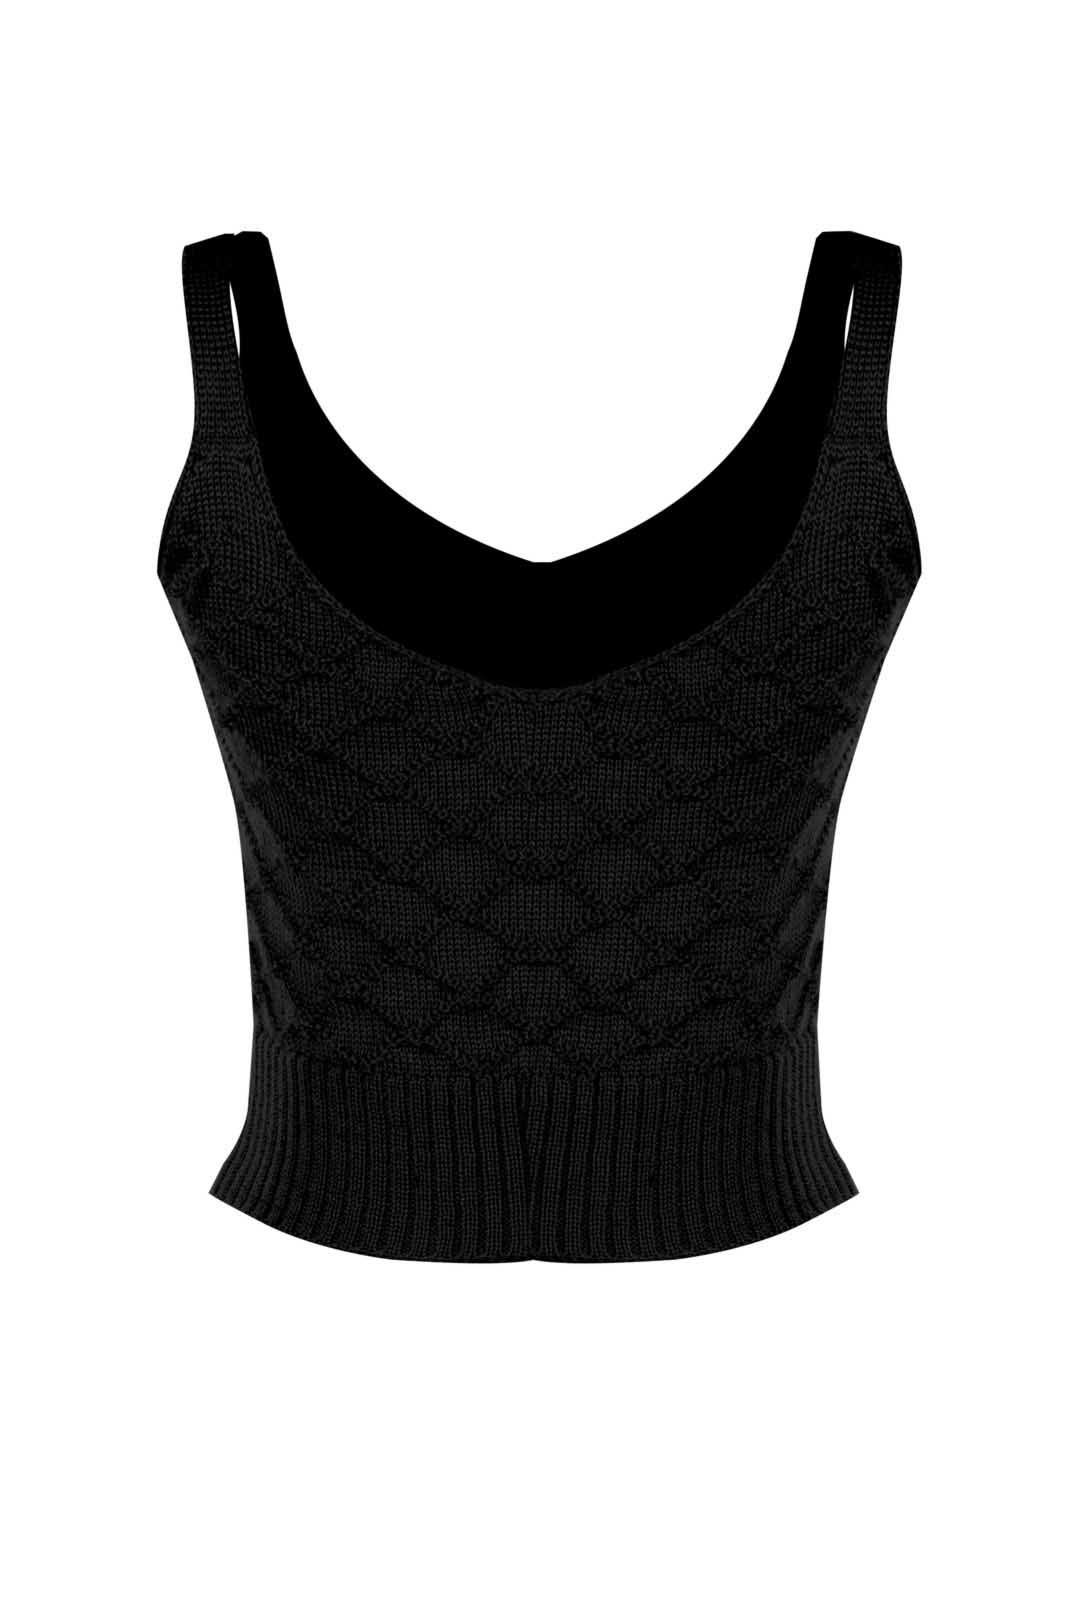 Top Outlet Dri Cropped Tricot Estampado Estampa Segue o Baile Preto